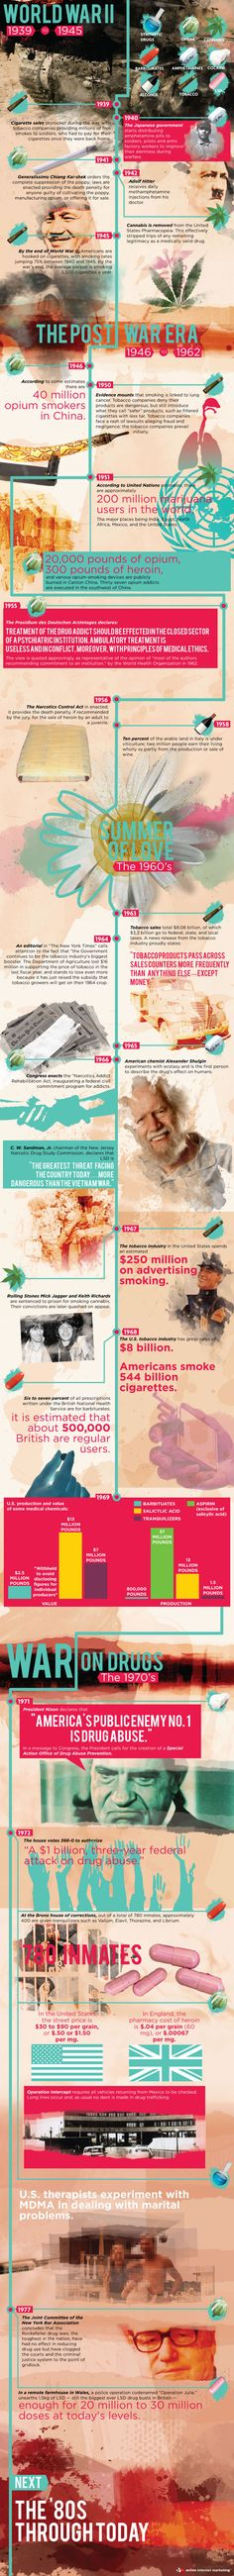 History of Drug Abuse: Drug & Alcohol Abuse from WWII - 1980s